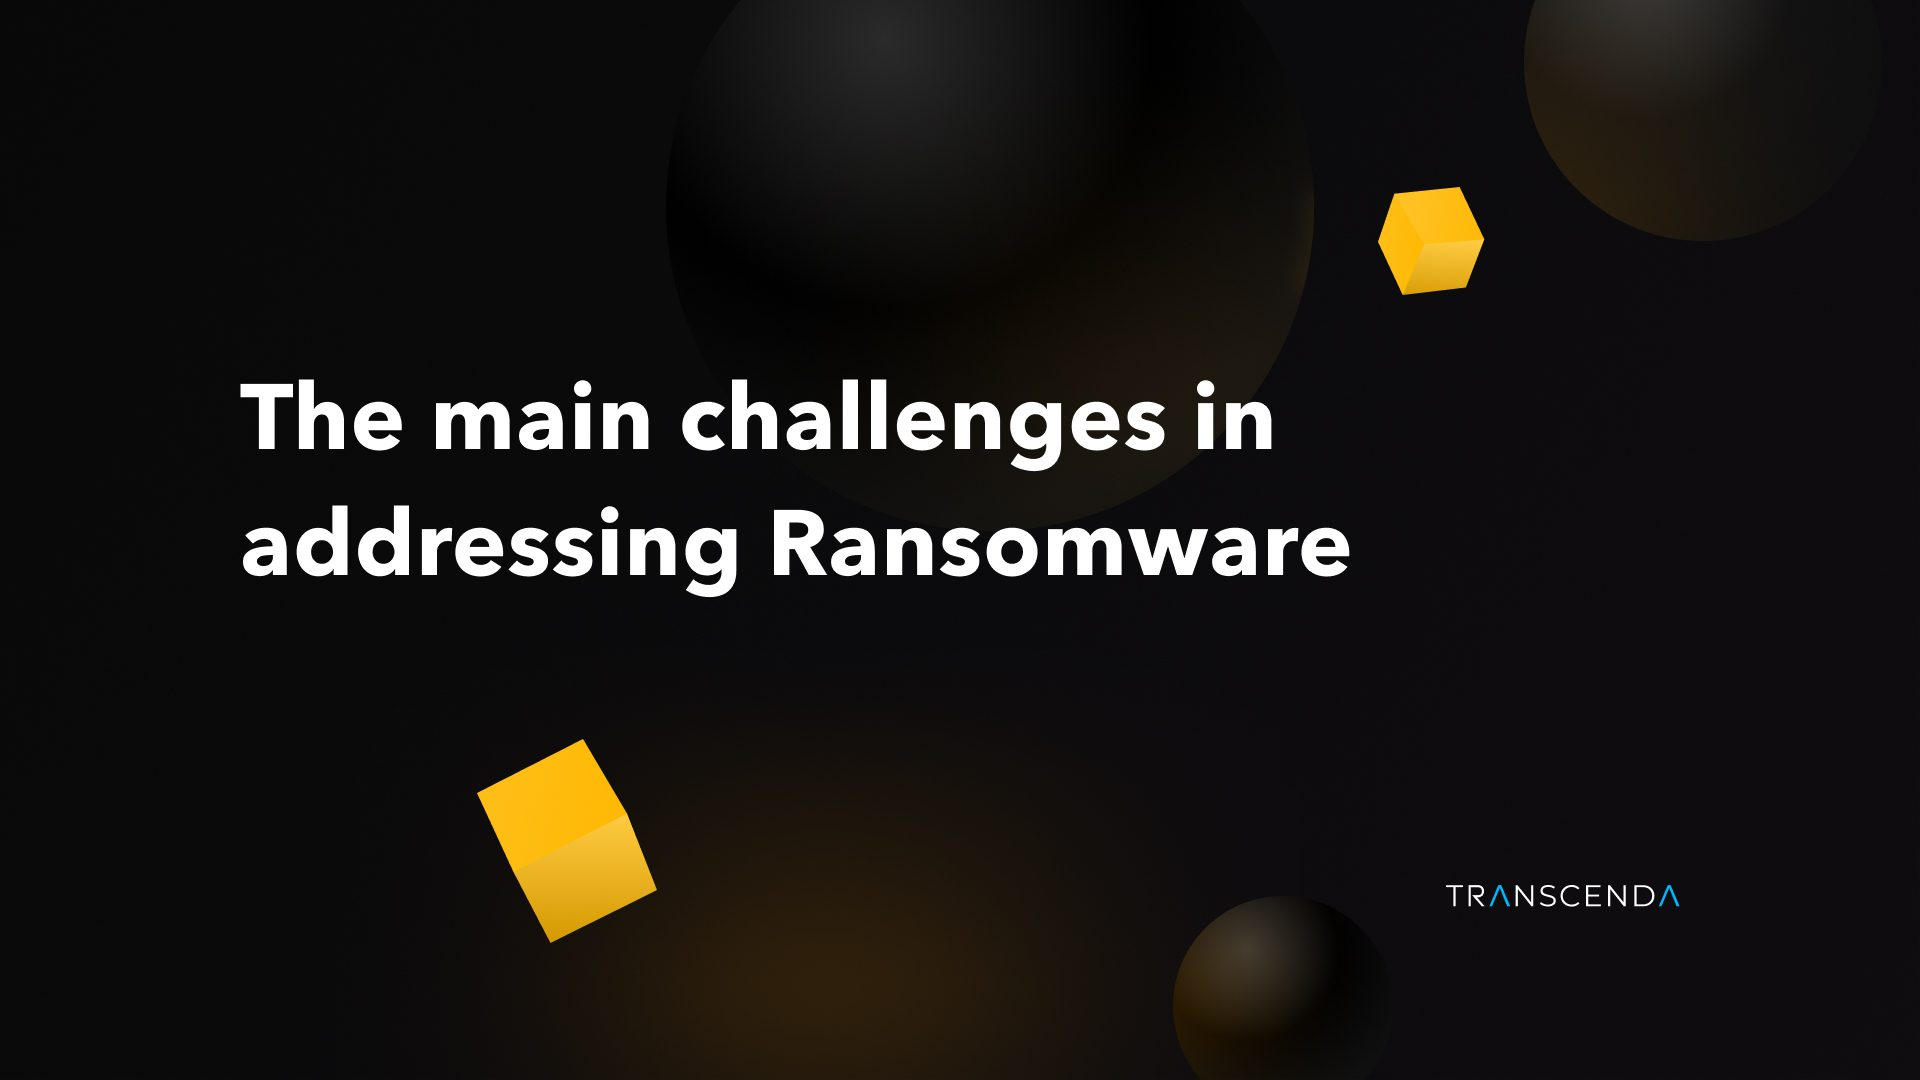 eBook: The main challenges in addressing Ransomware